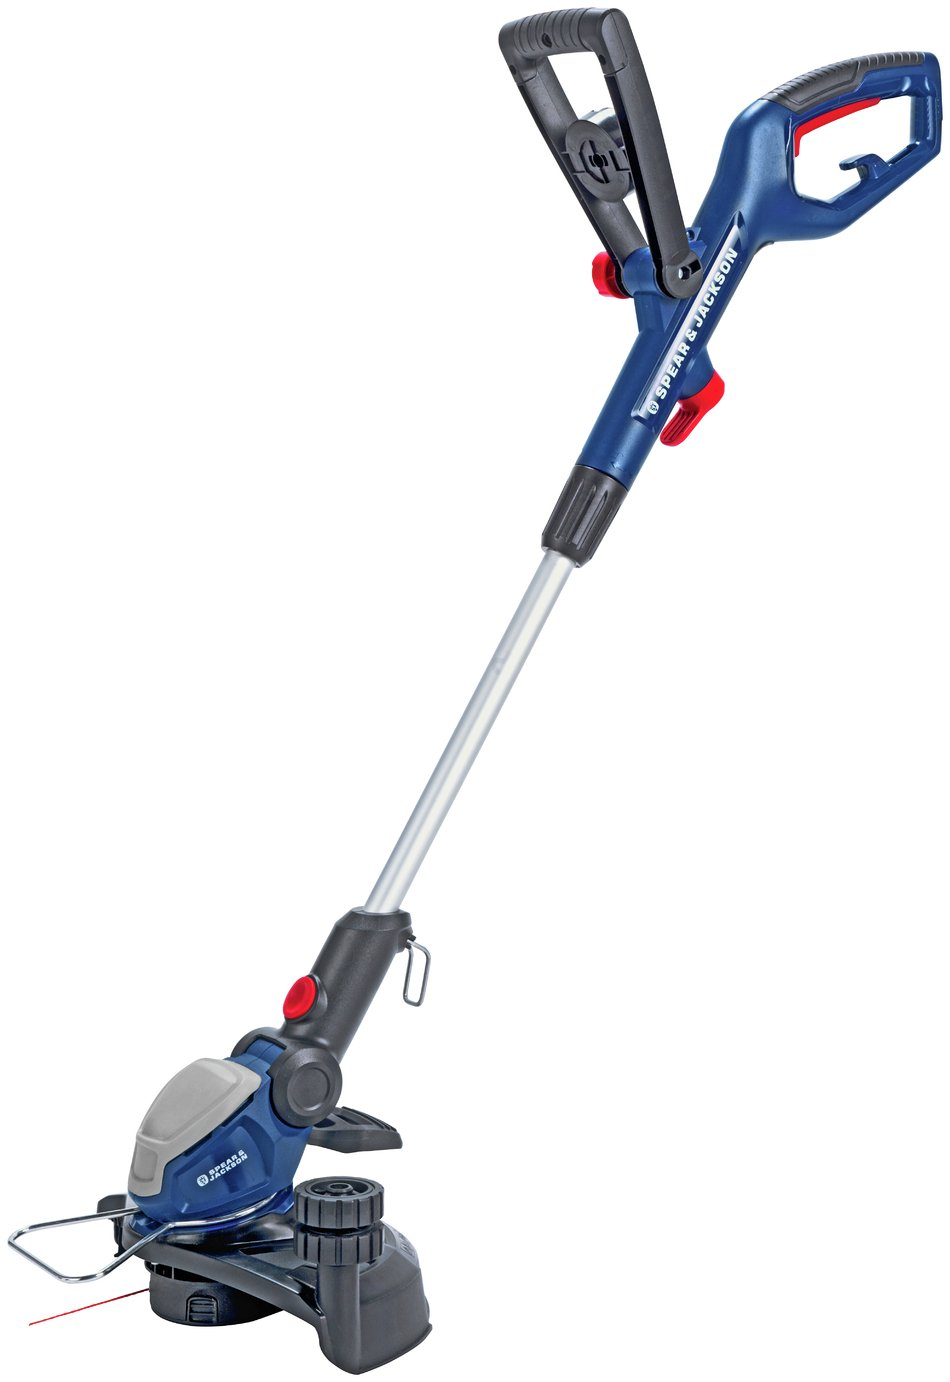 Spear & Jackson S4528ET 28cm Corded Grass Trimmer - 450W